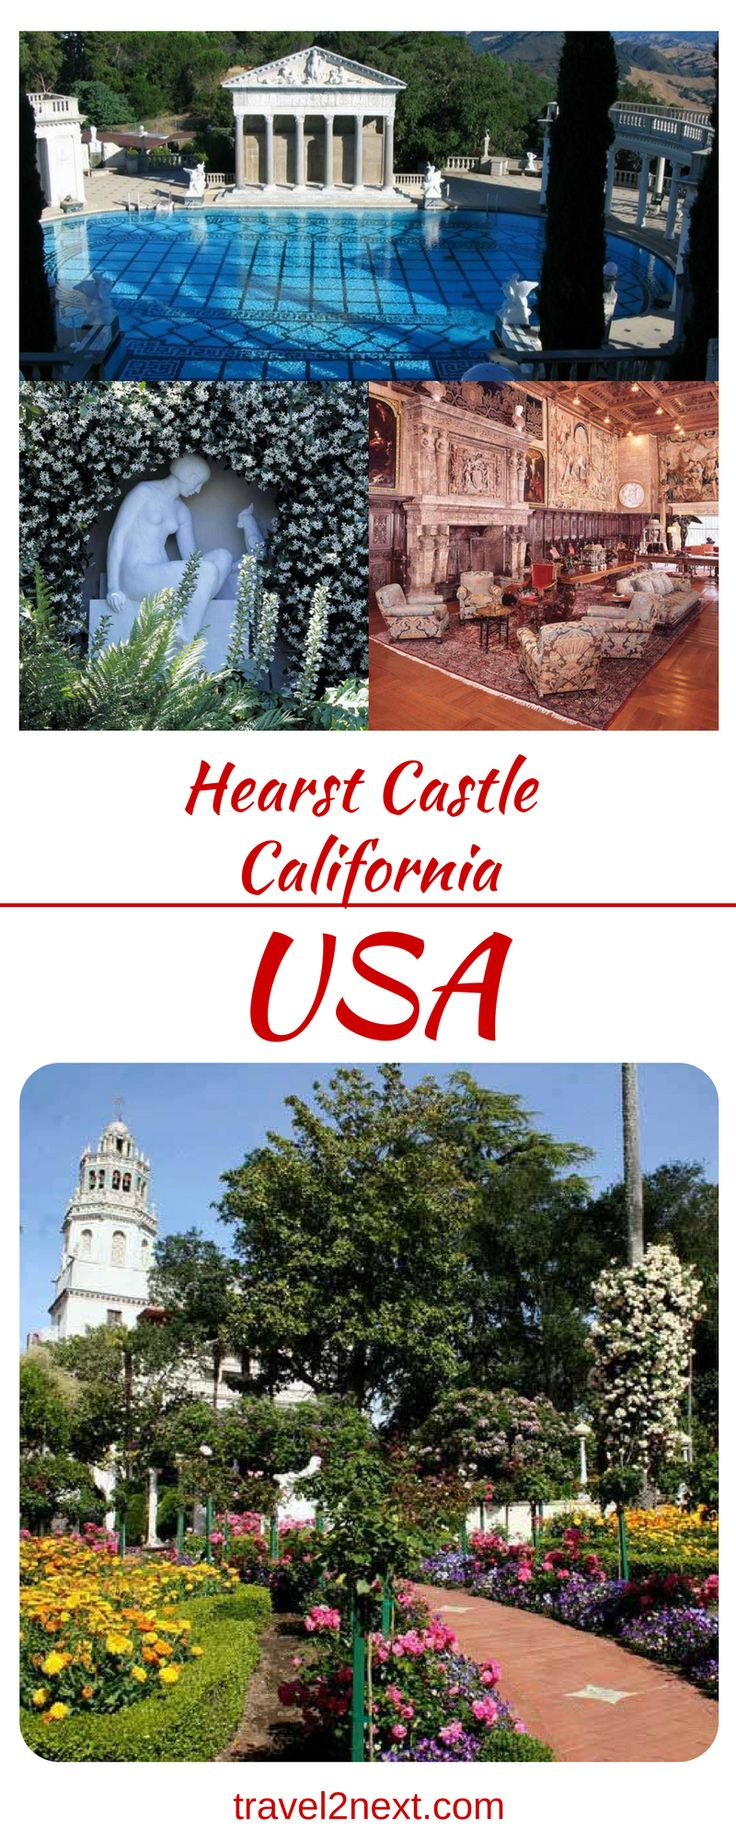 Hearst Castle – California. Hearst Castle has been through some changes in recent years.